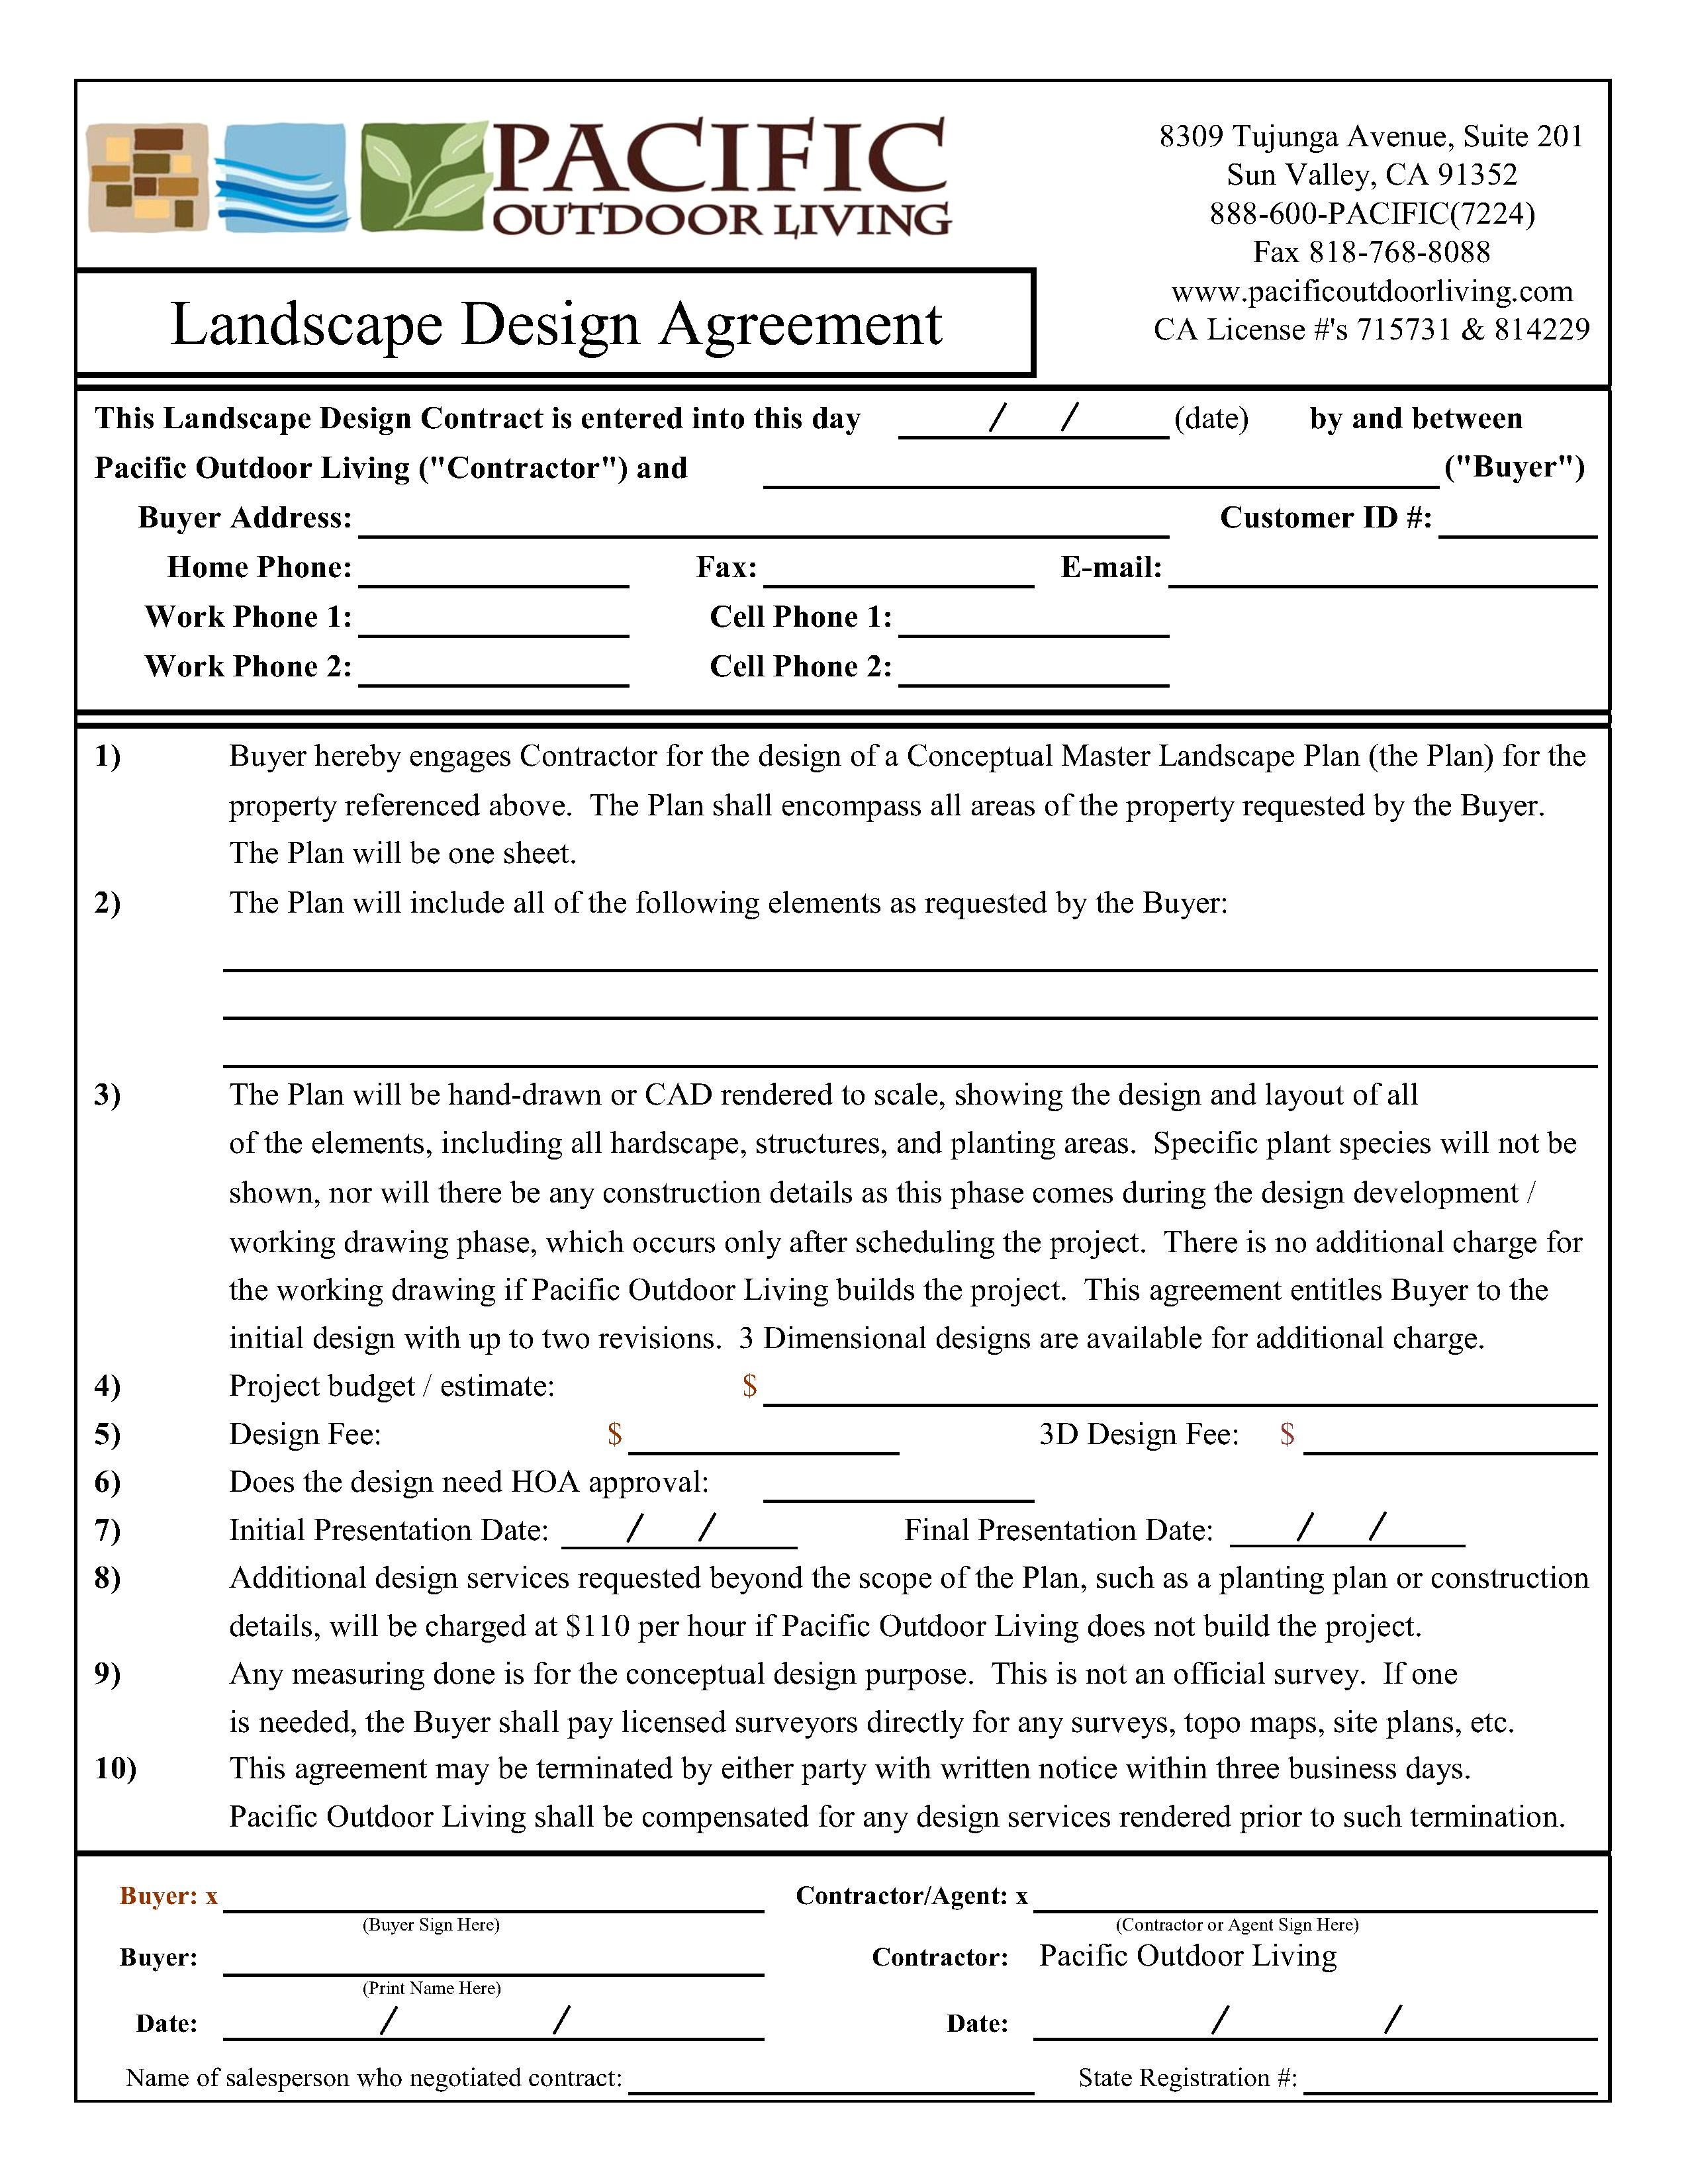 Landscape Design Agreement Pacific Outdoor Living Academy